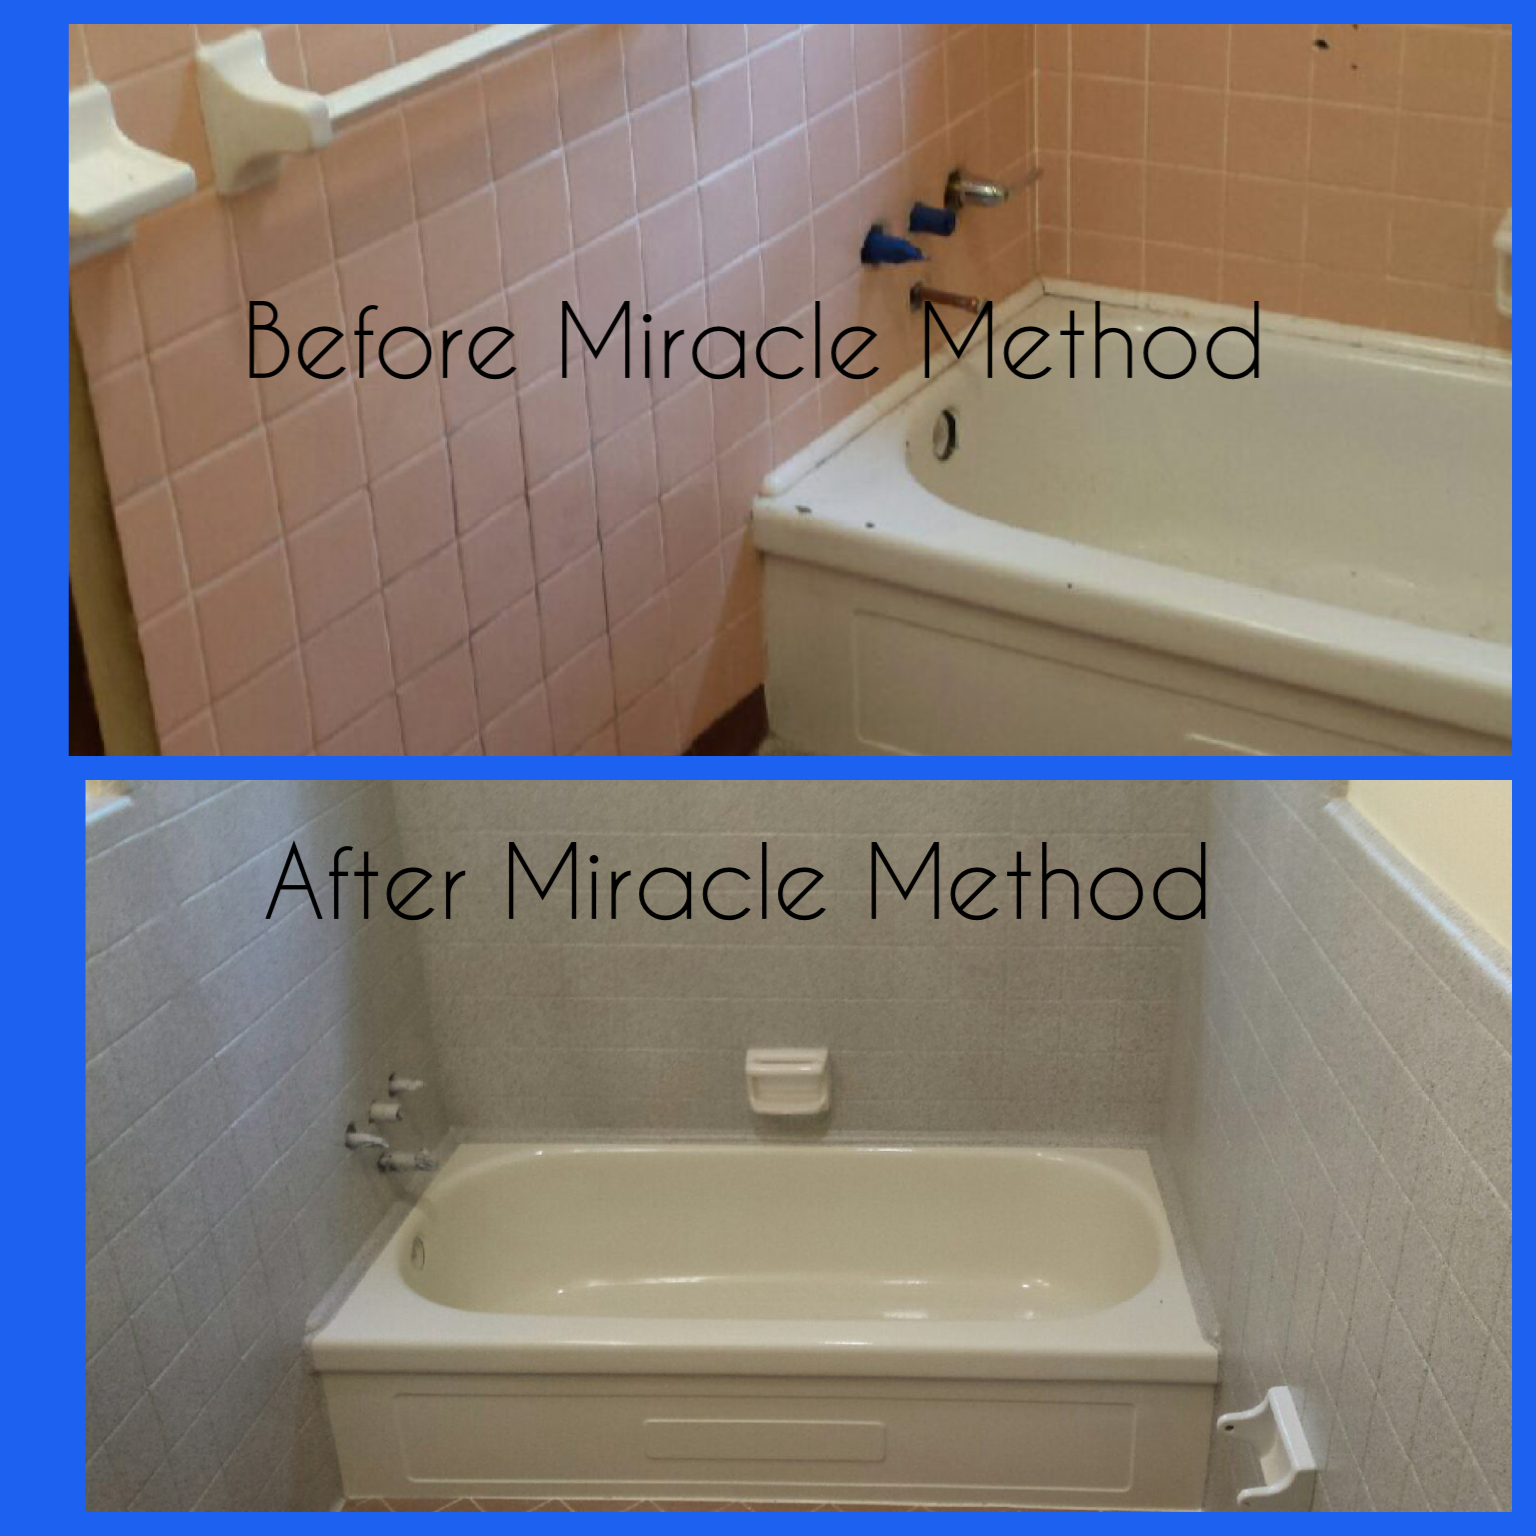 Miracle Method in Smyrna, TN 37167 - ChamberofCommerce.com